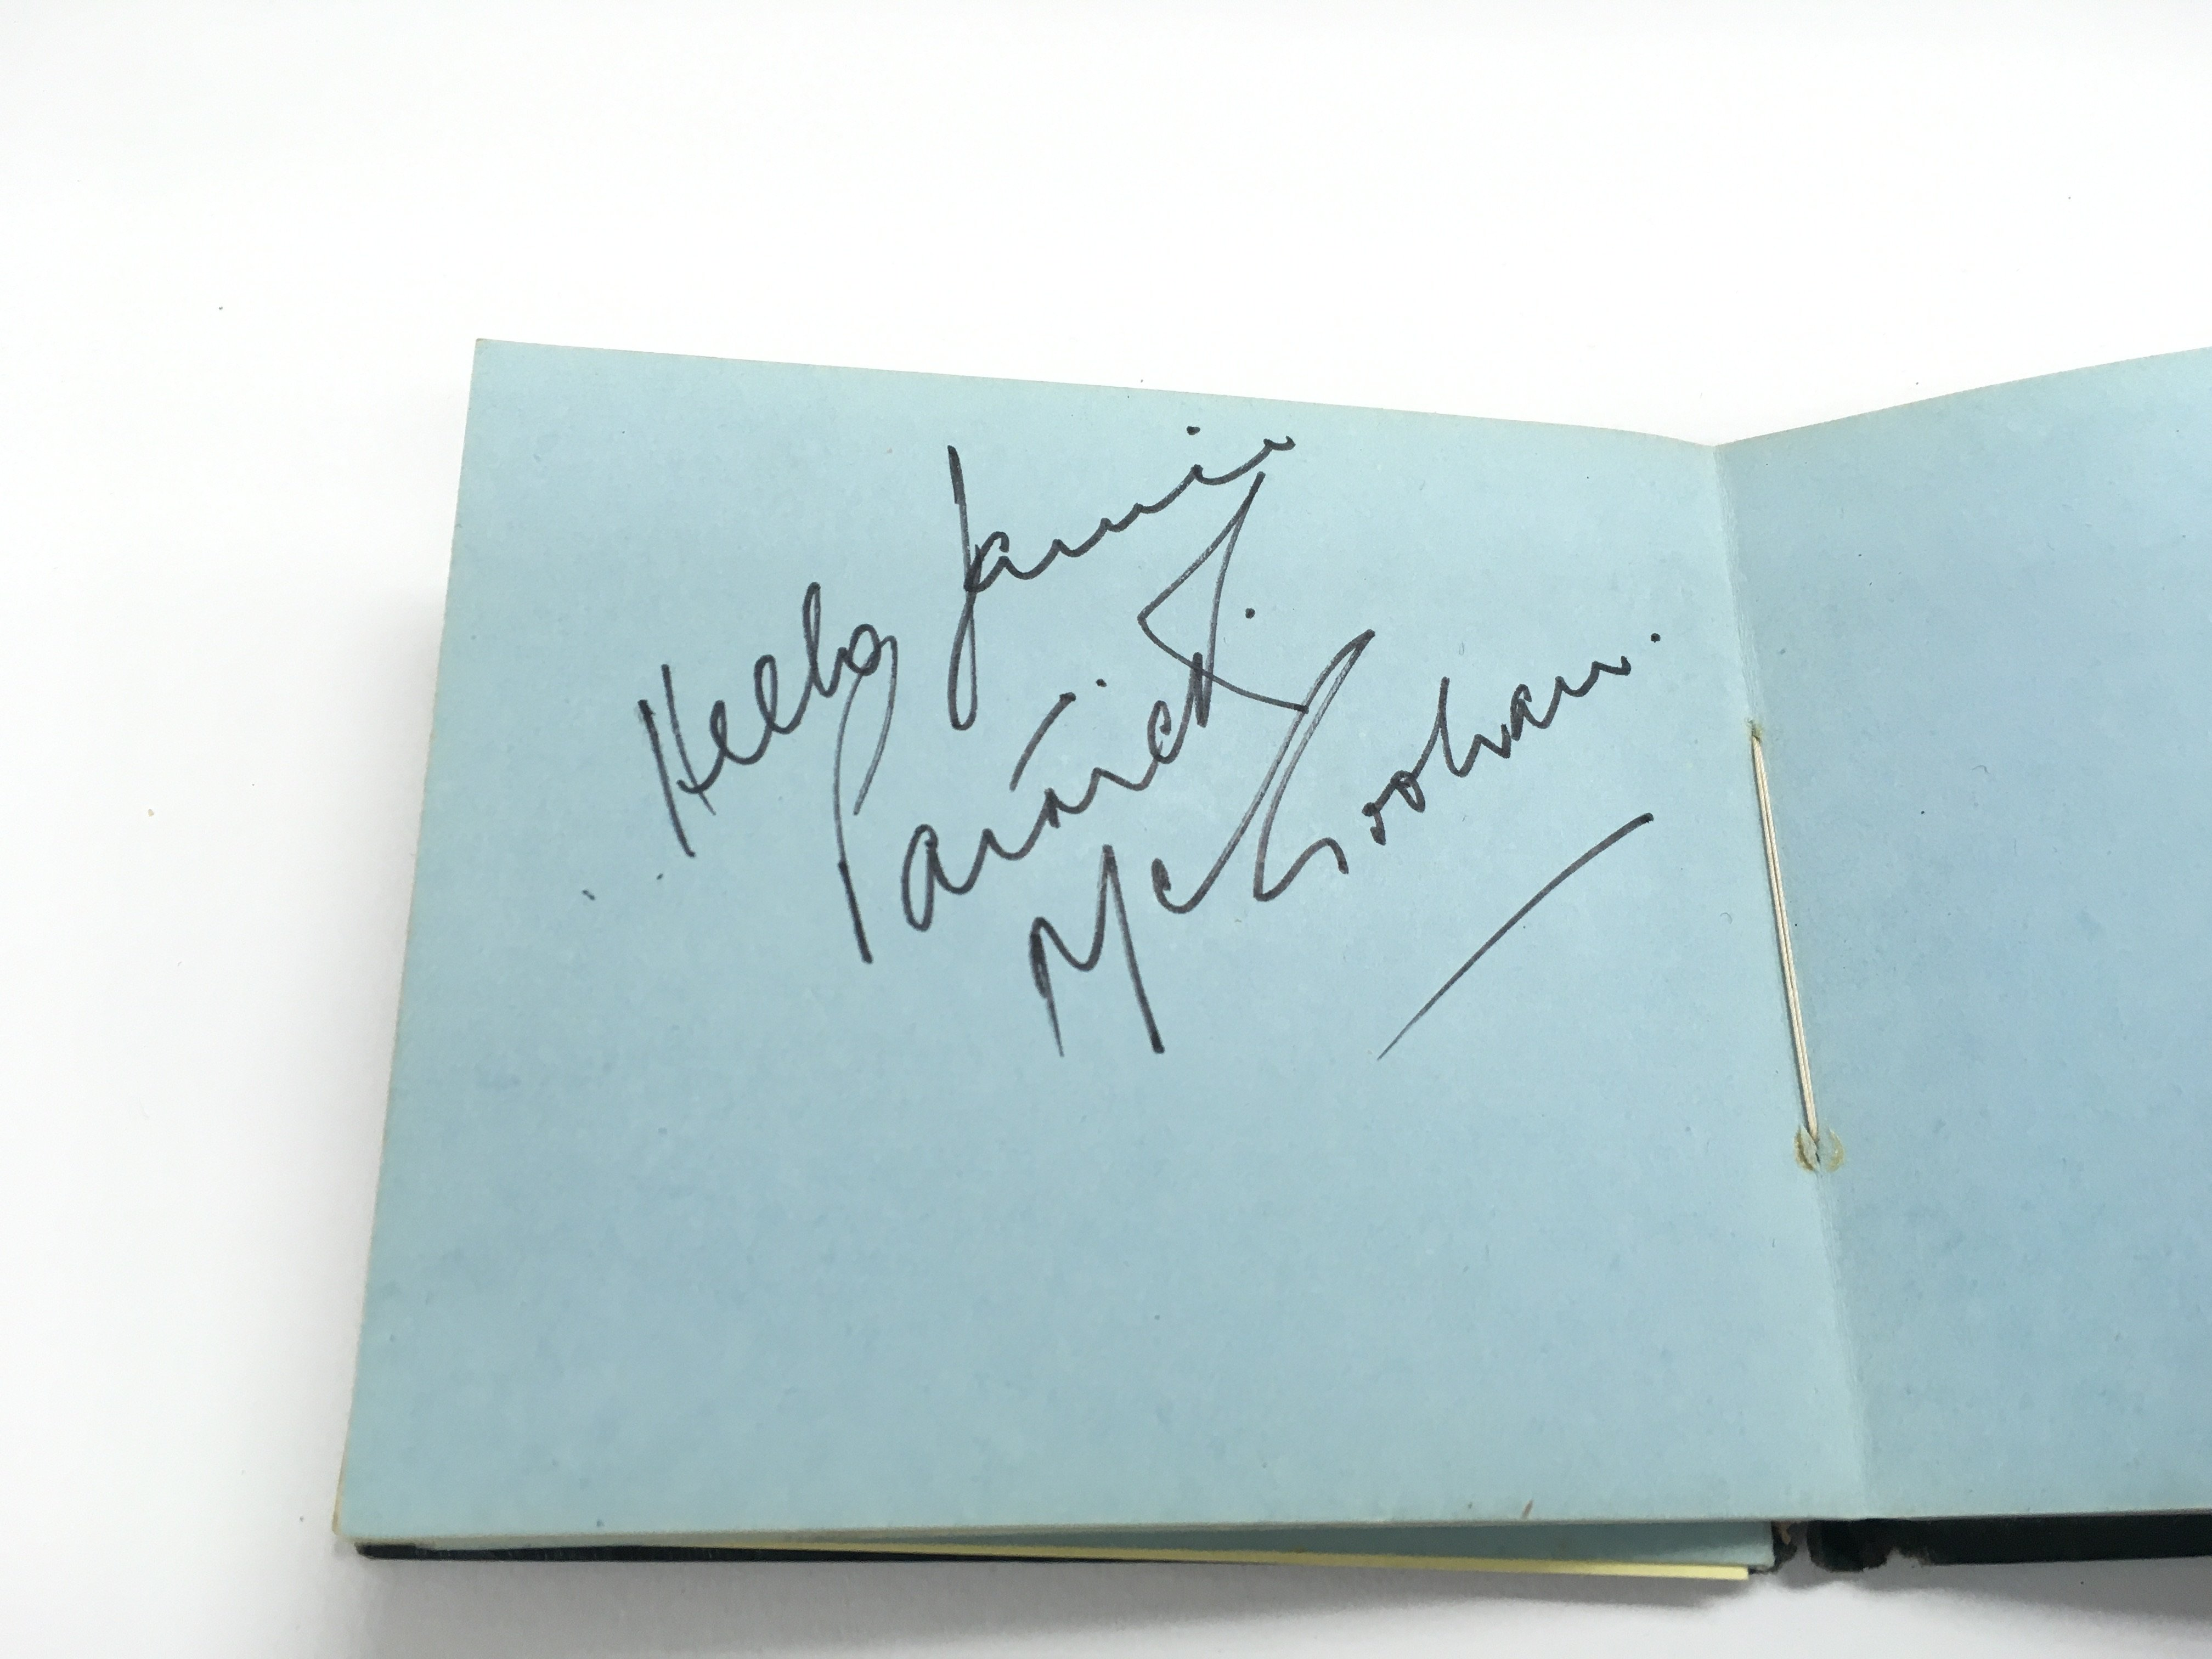 An autograph booklet containing various autographs - Image 4 of 5